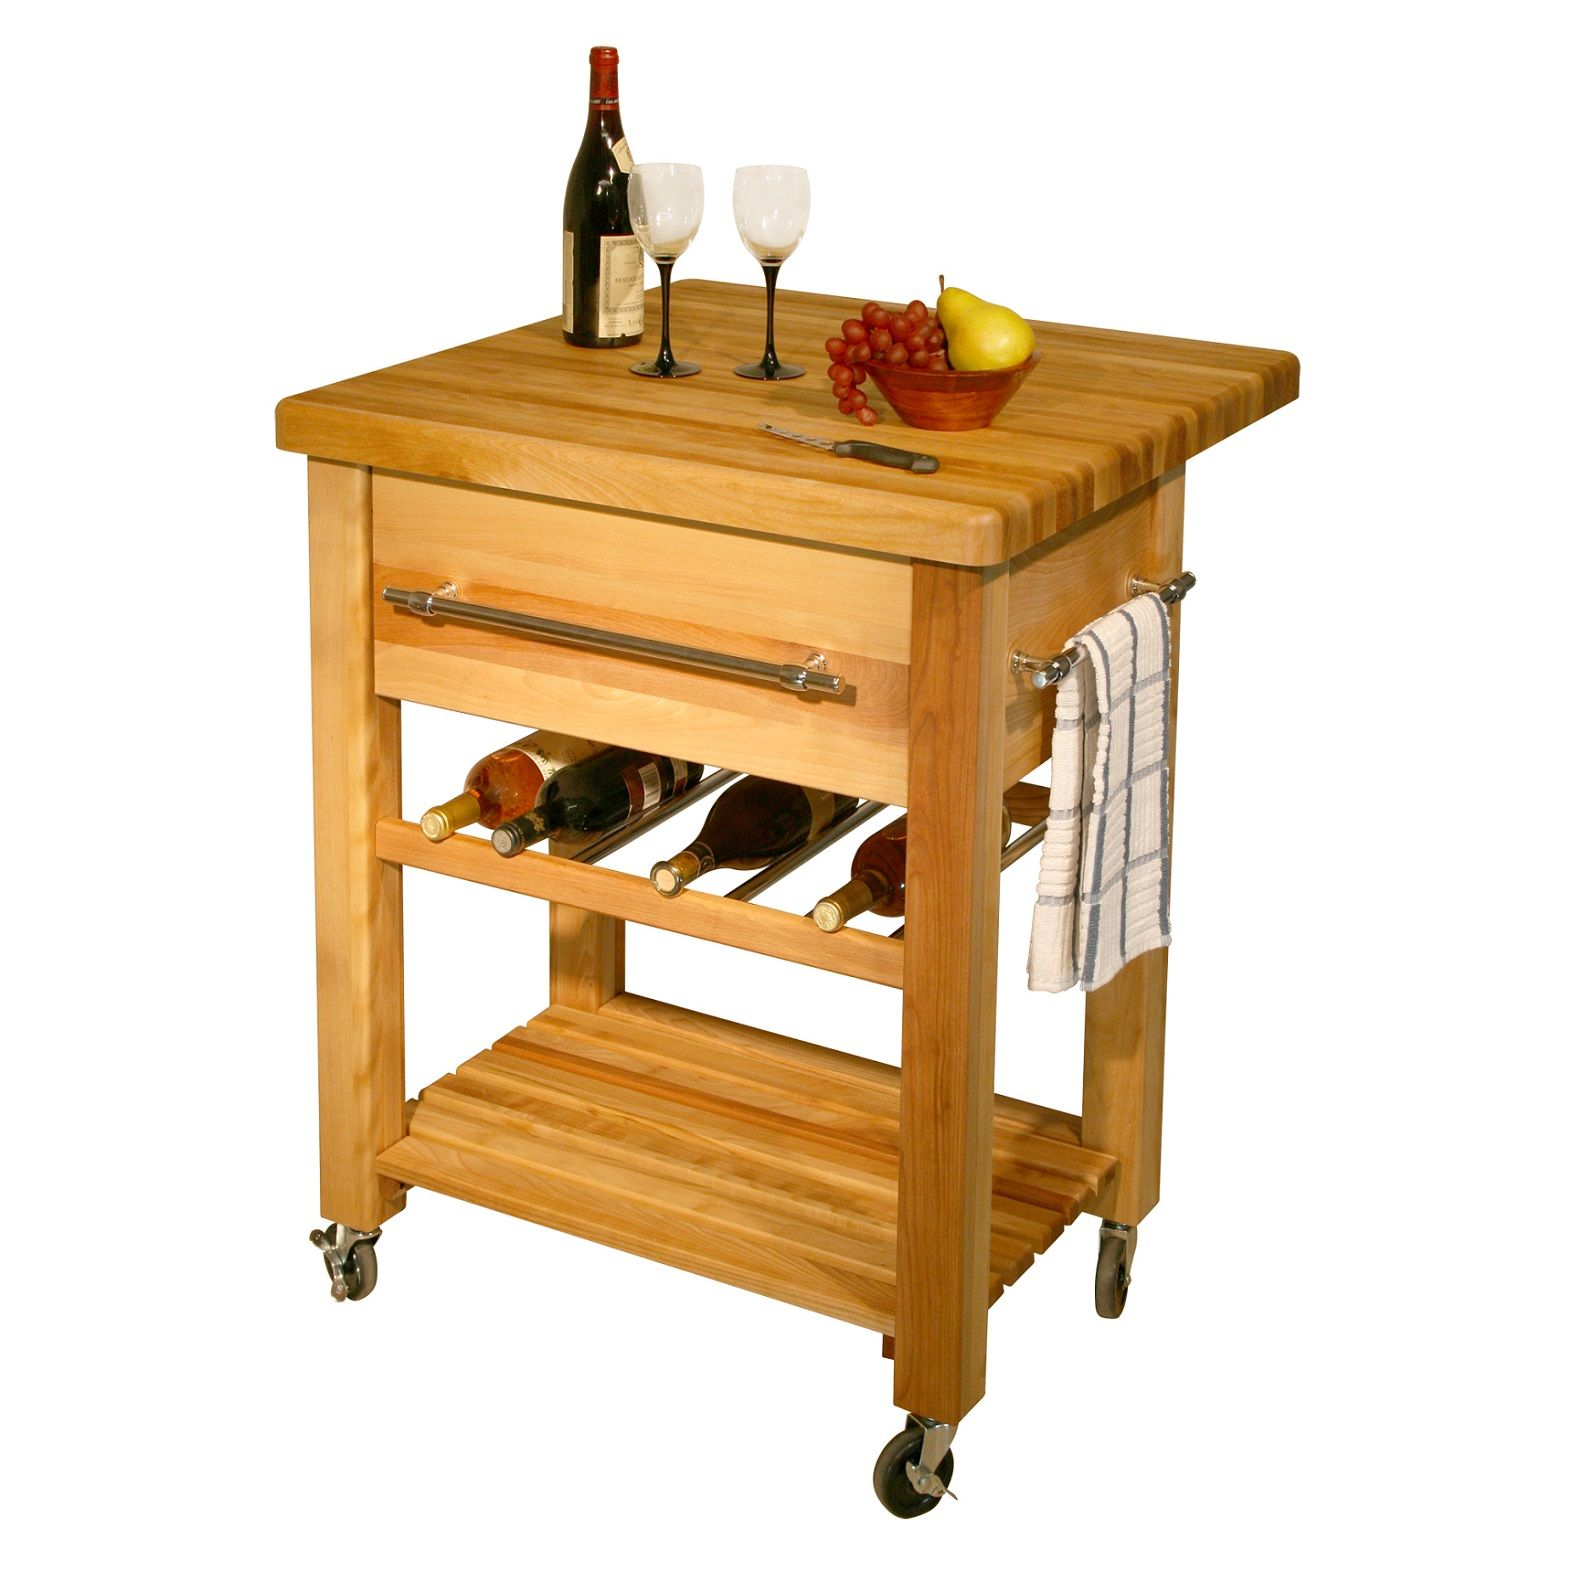 Adorable Catskill Grand Island Wine Countertop Butcher Block Cart With Drop Leaf And Wheels For Movable Kitchen Ideas